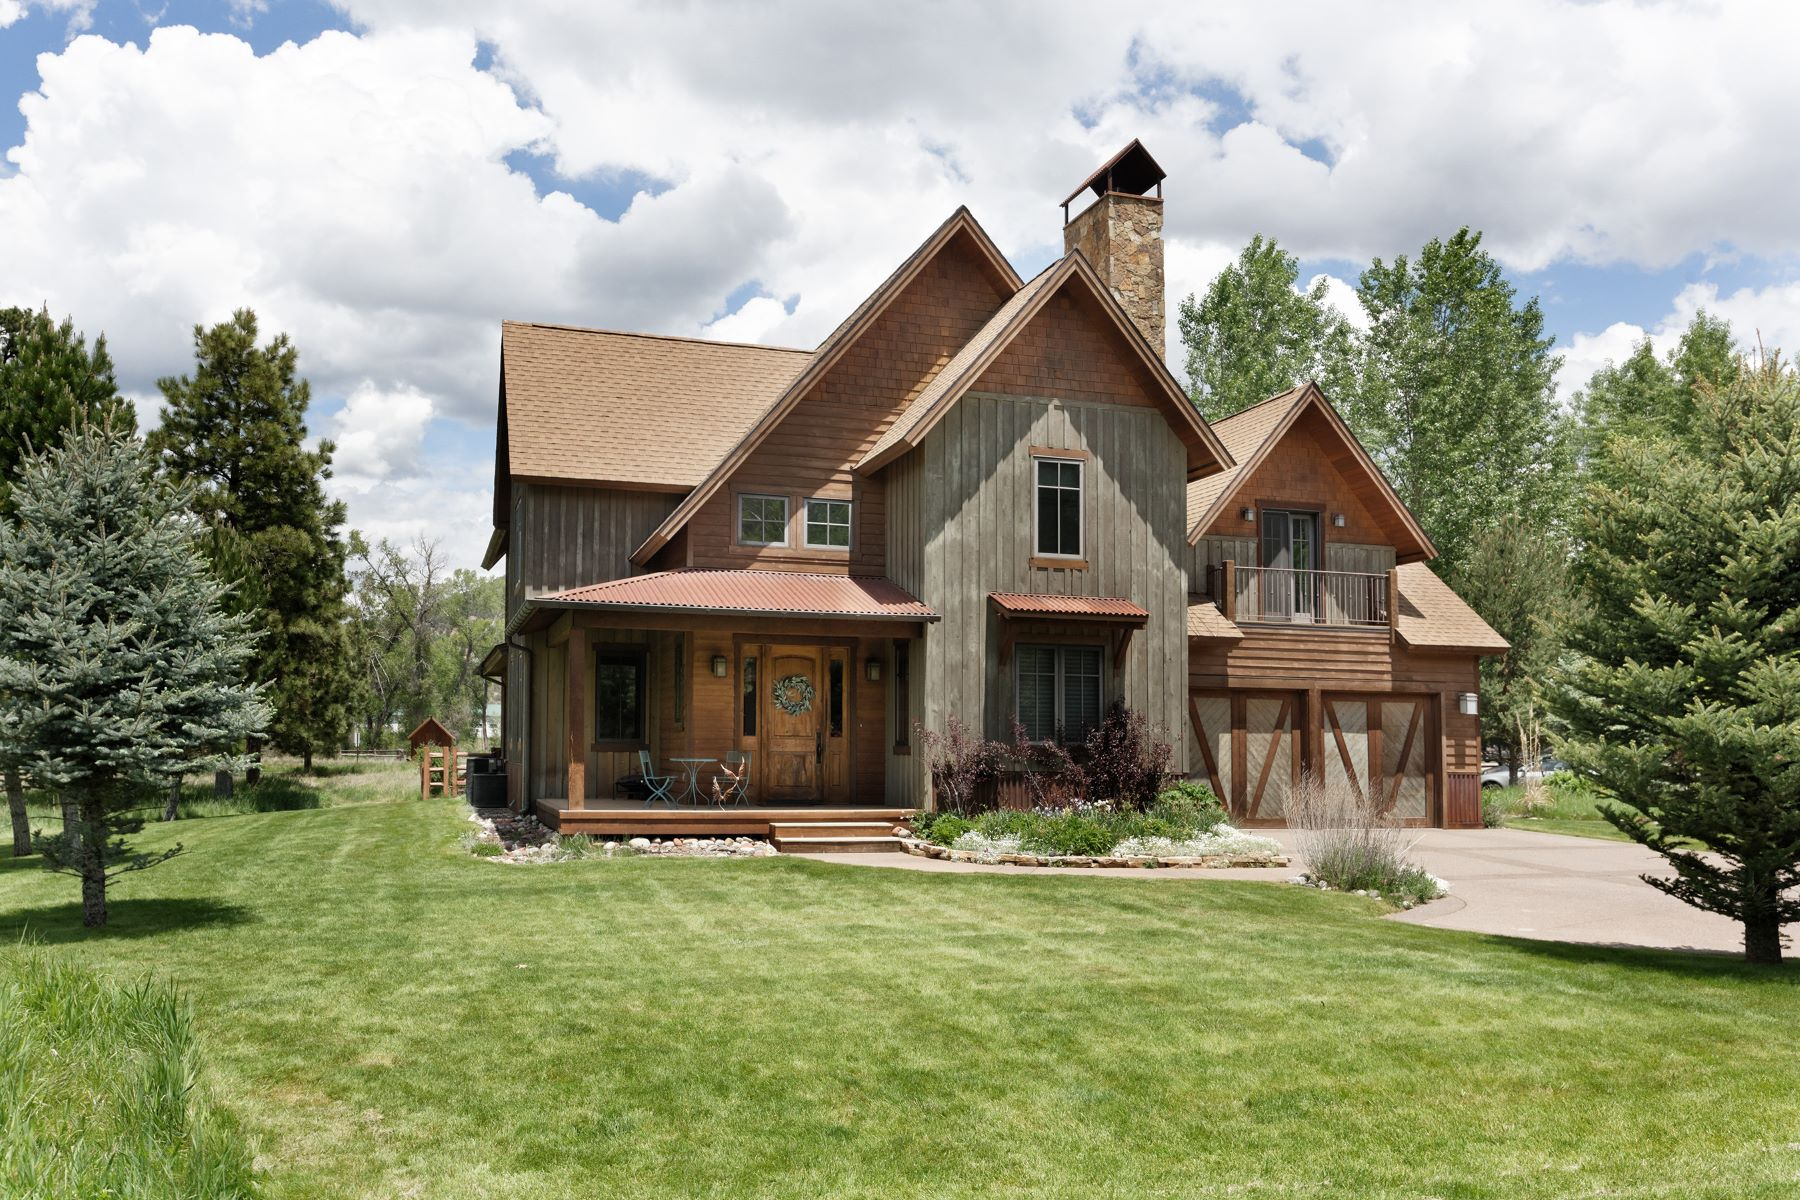 Maison unifamiliale pour l Vente à Blue Creek Ranch 41 Choke Cherry Court Carbondale, Colorado, 81623 États-Unis